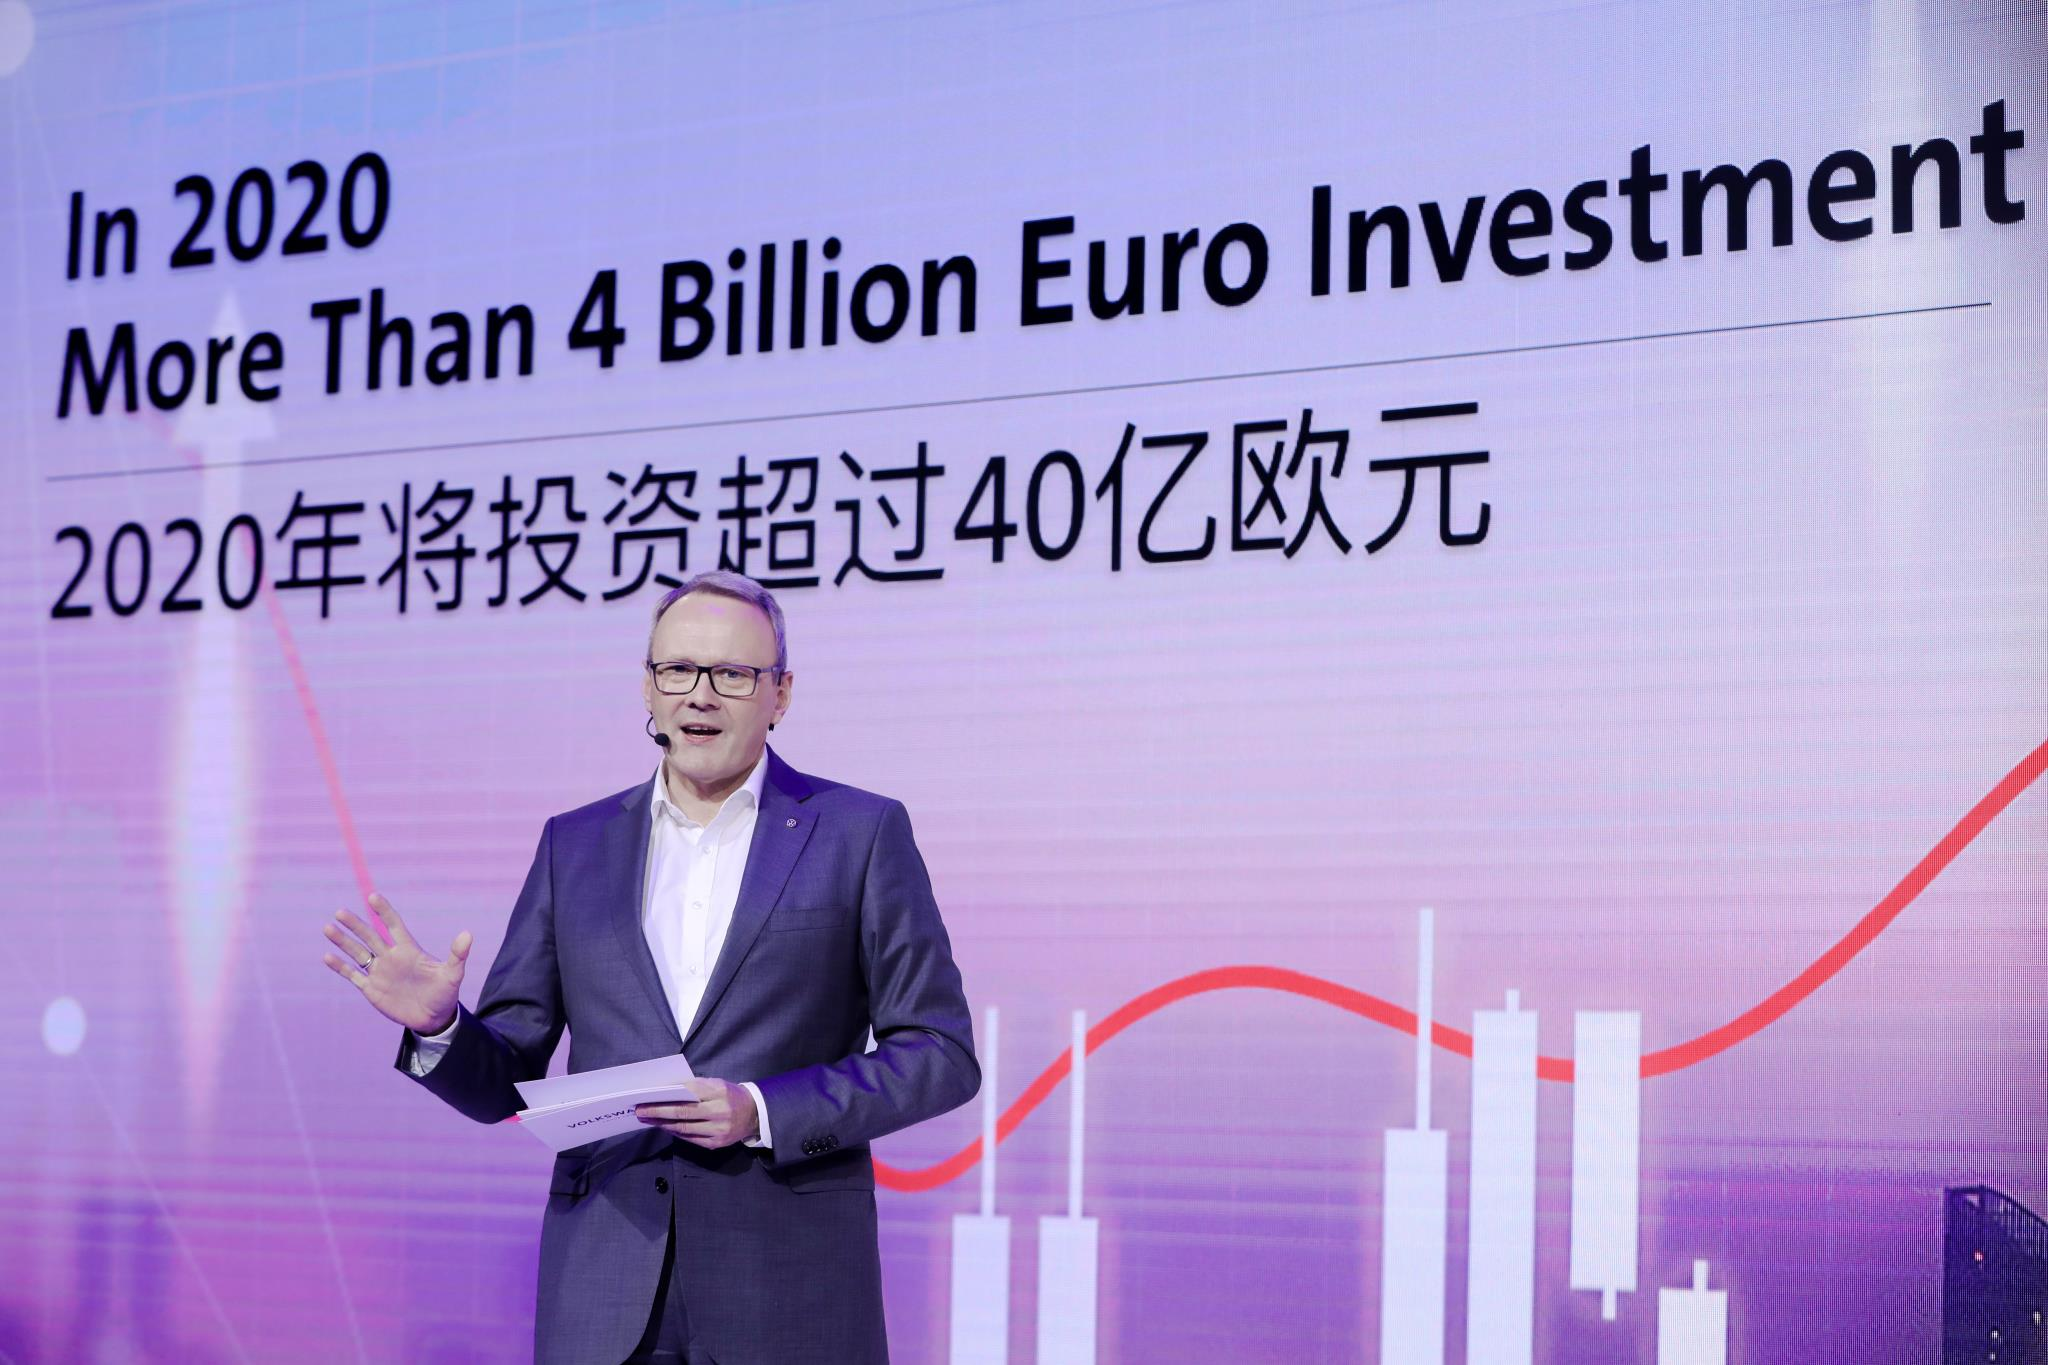 VOLKSWAGEN GROUP CHINA TO INVEST OVER 4 BILLION EURO IN 2020